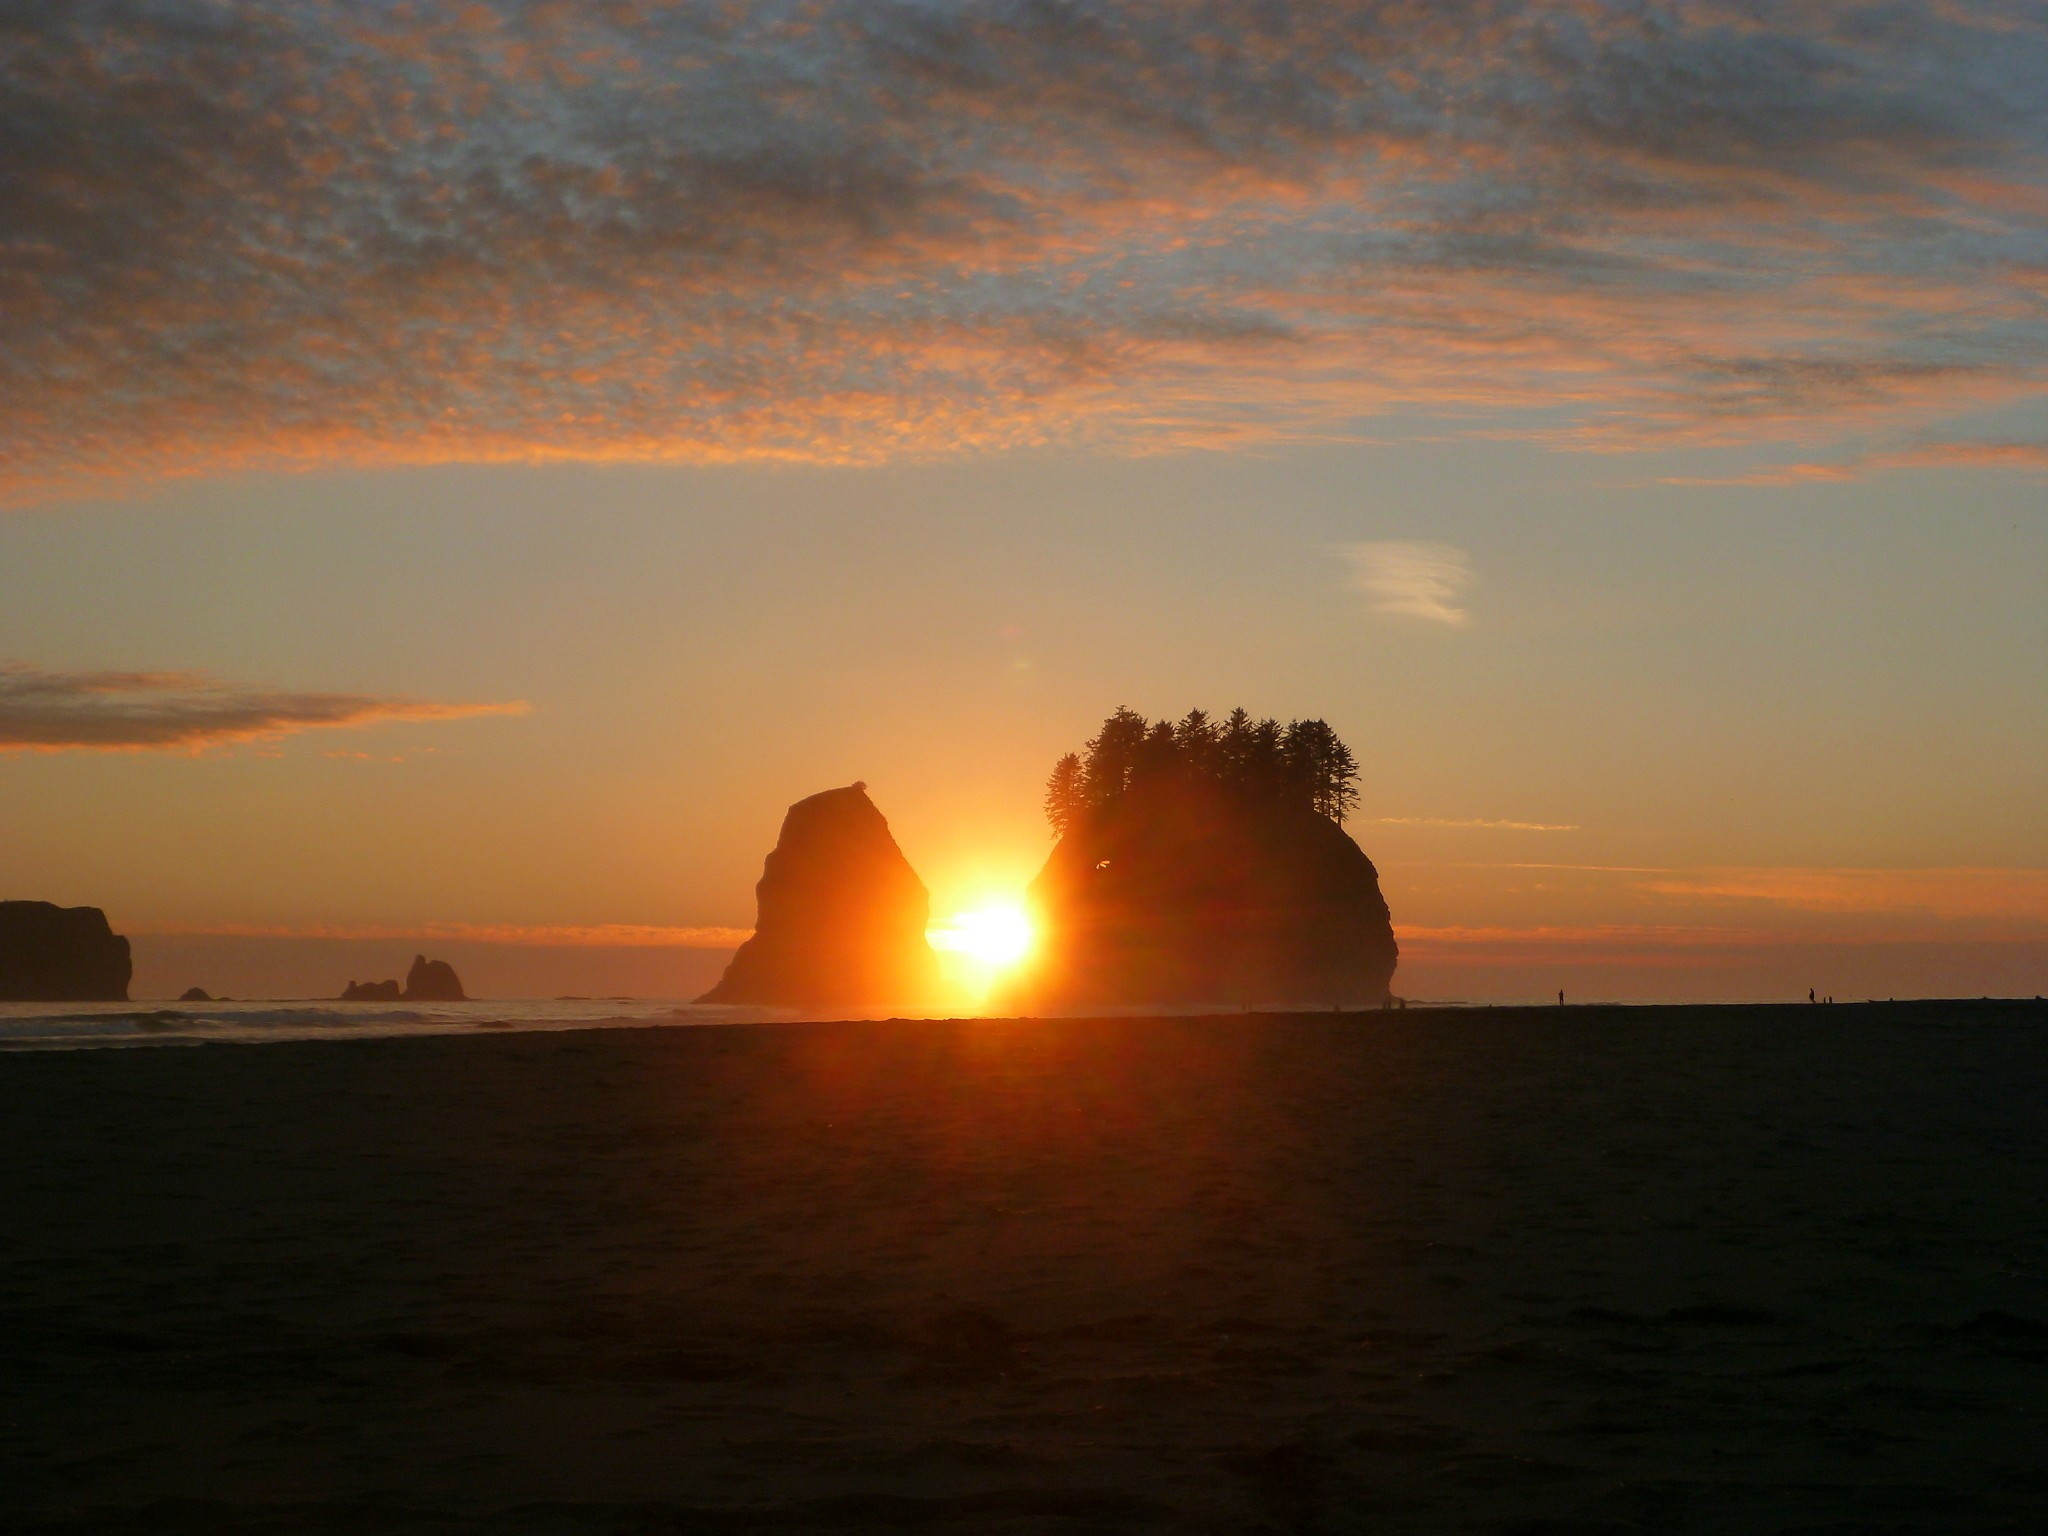 A highlight of Olympic Coast backpacking is the spectacular sunsets. Here the sun sets between two sea stacks off the coast. There a a few clouds lined with pink